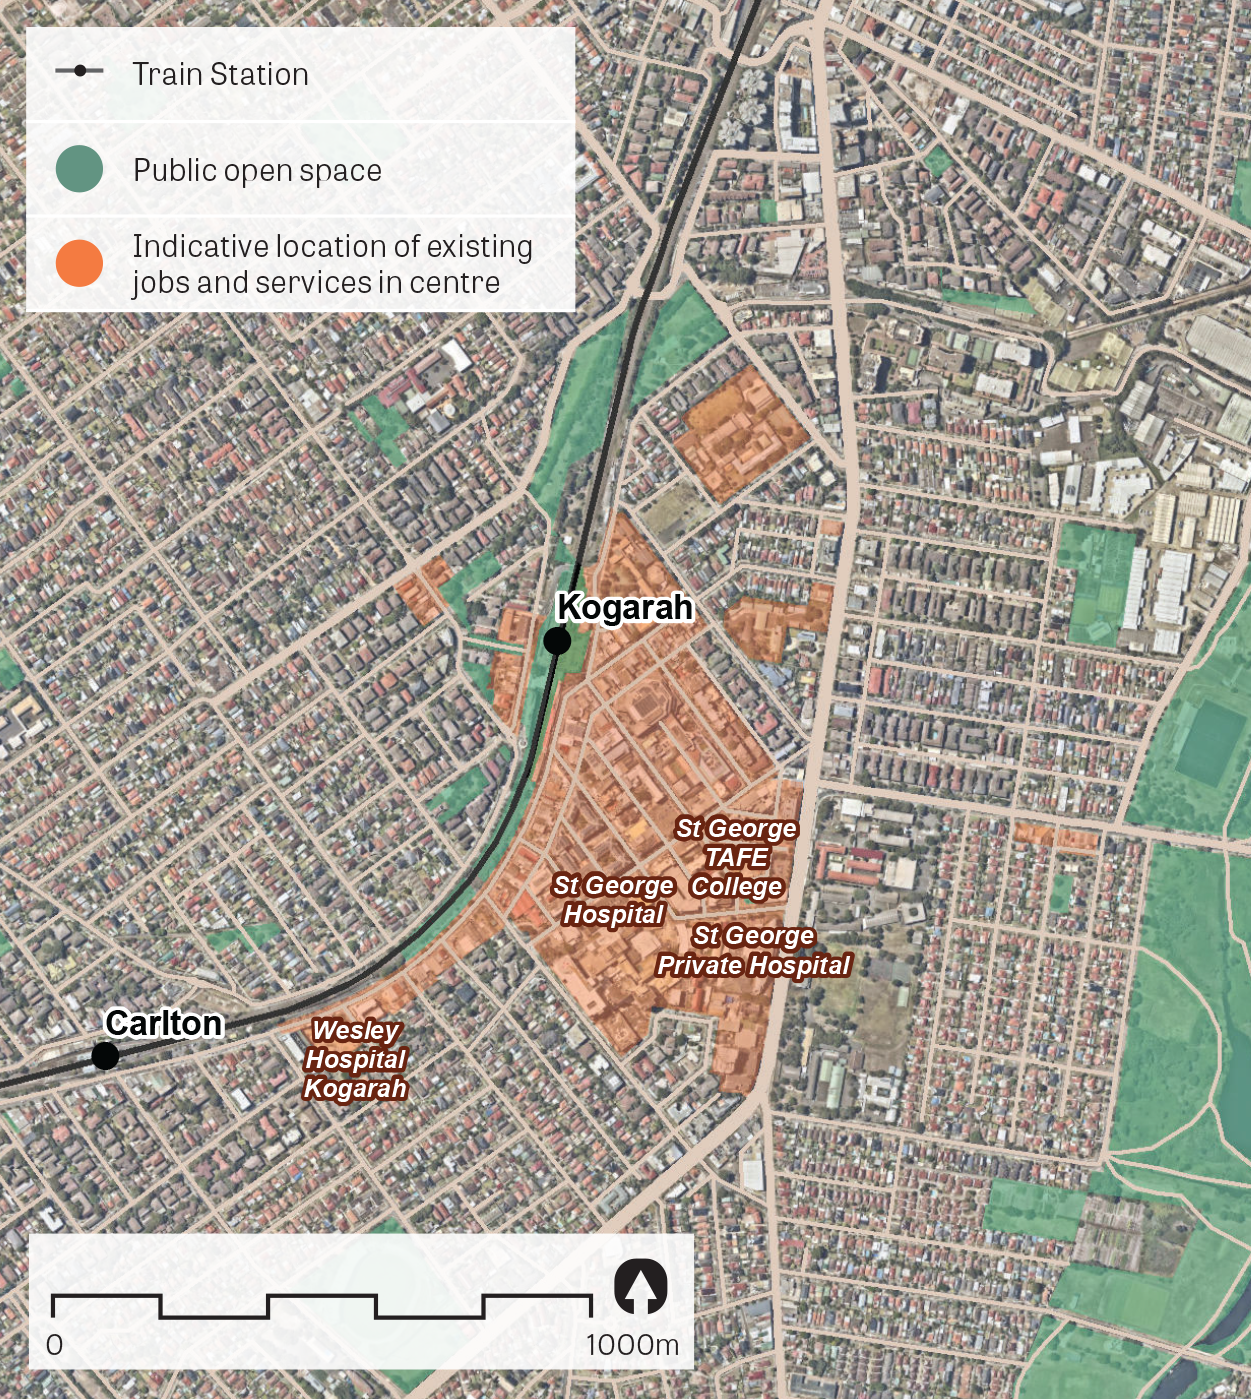 An aerial image of Kogarah showing the principal areas containing jobs and services.